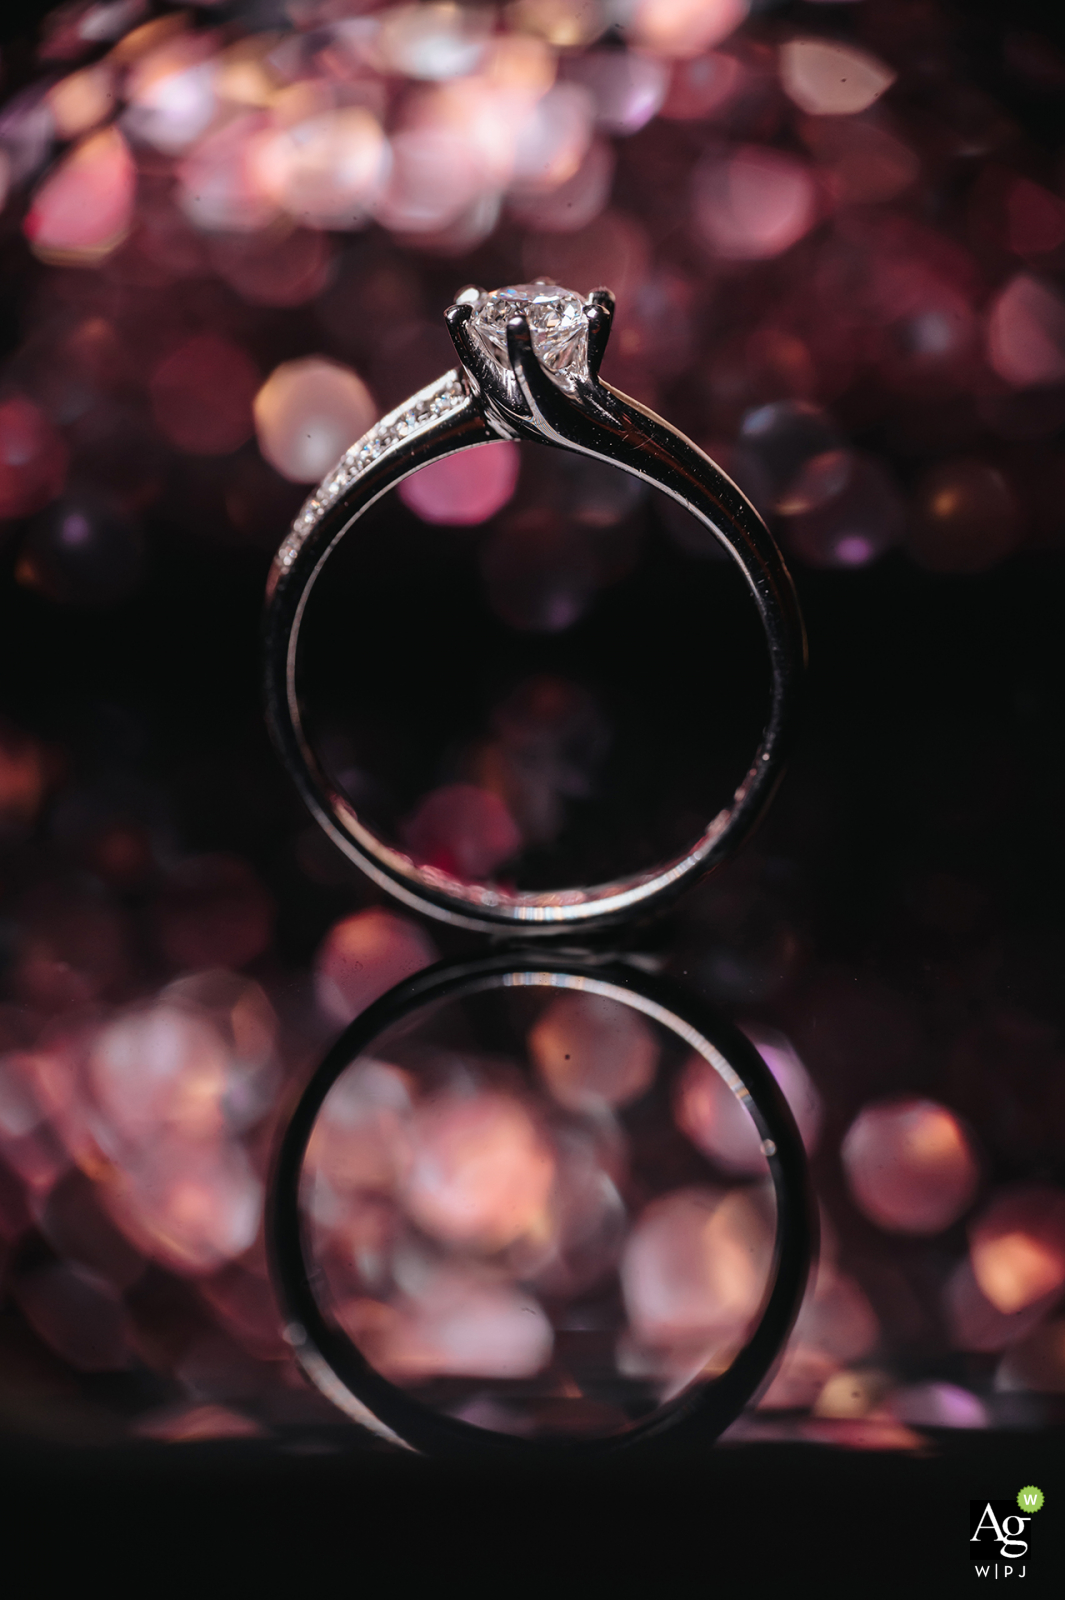 Creative wedding detail image fromTaiwan of the bride's diamond ring